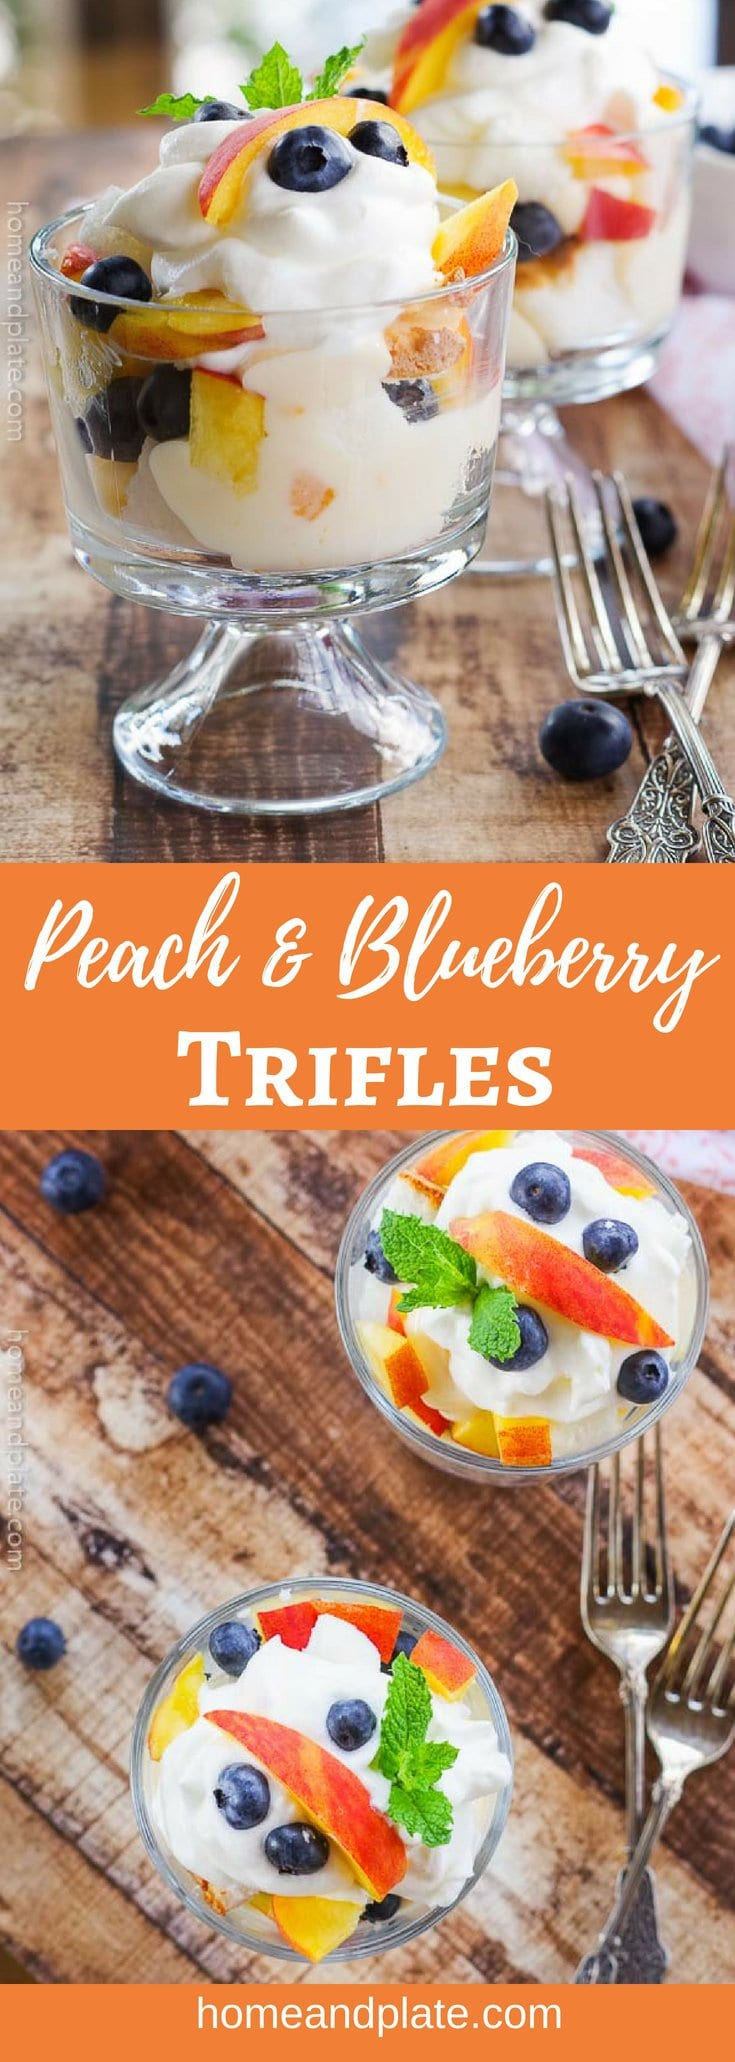 Peach & Blueberry Trifle | www.homeandplate.com | This easy no-bake dessert features summer's sweetest peaches and fresh blueberries. #trifle #peachtrifle #nobakedessert #homeandplate